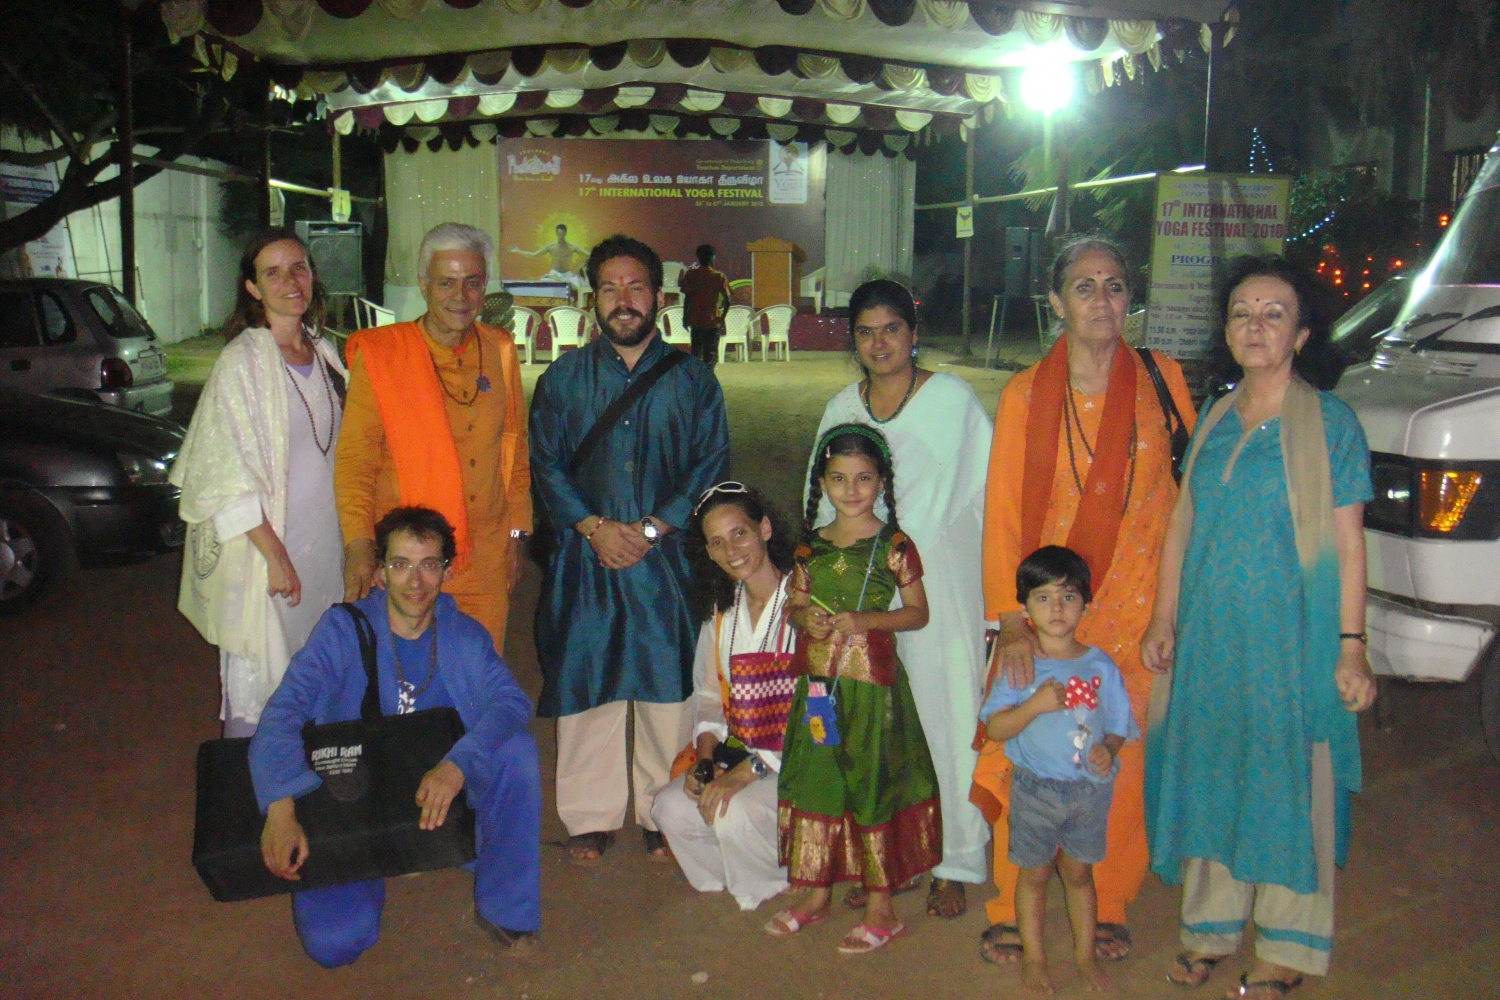 17th International Yoga Festival, Puducherry, Índia - 2010, Janeiro